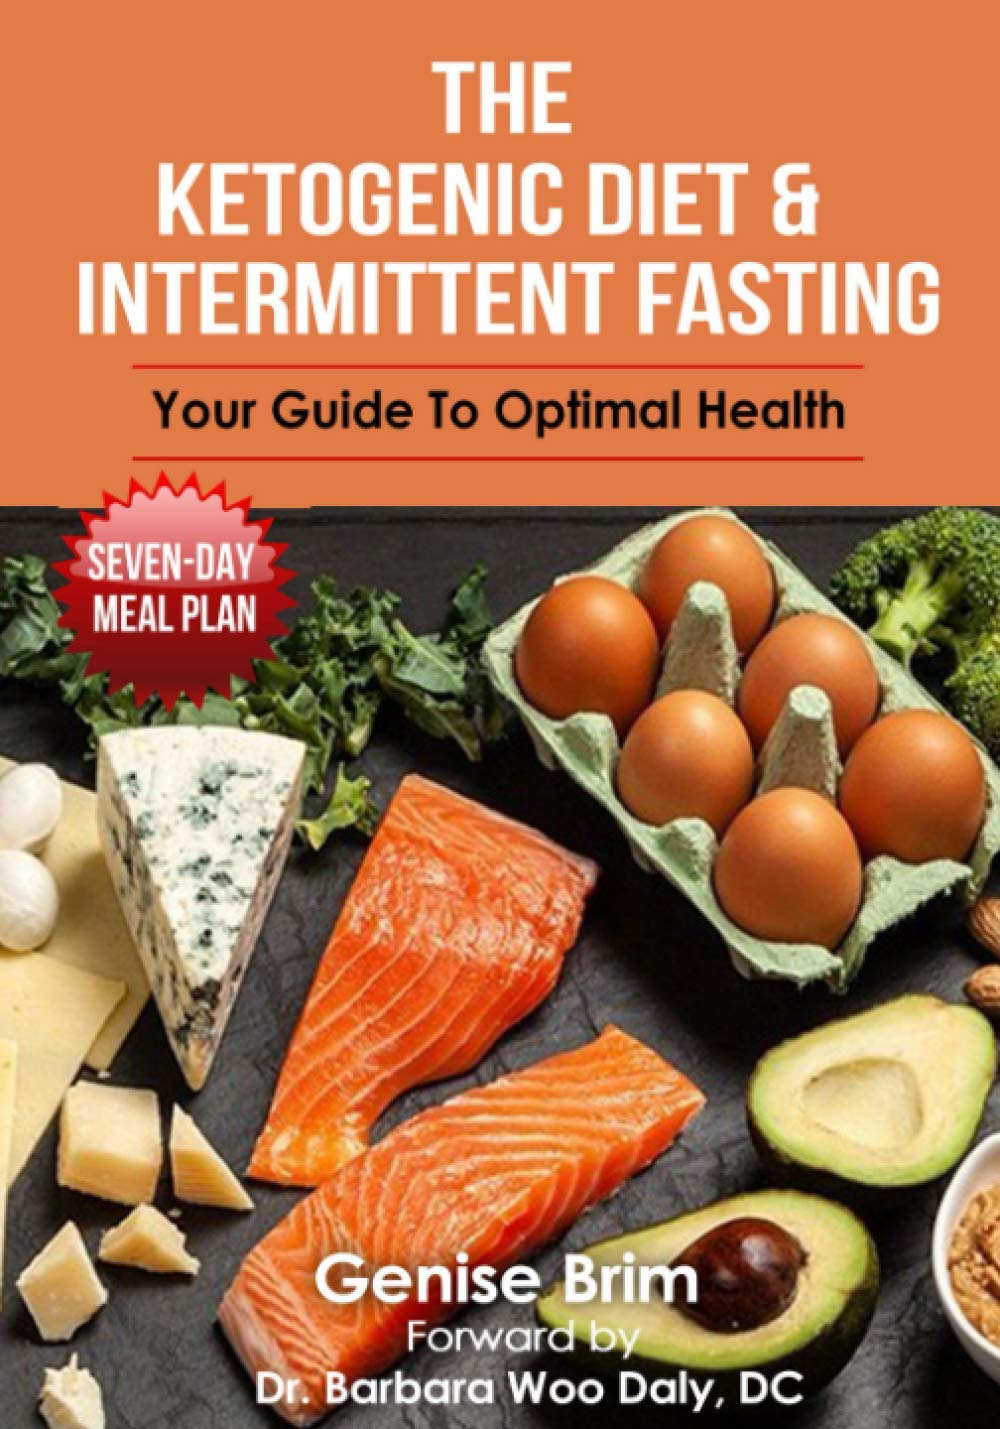 The Ketogenic Diet & Intermittent Fasting: You Guide To Optimal Health 1